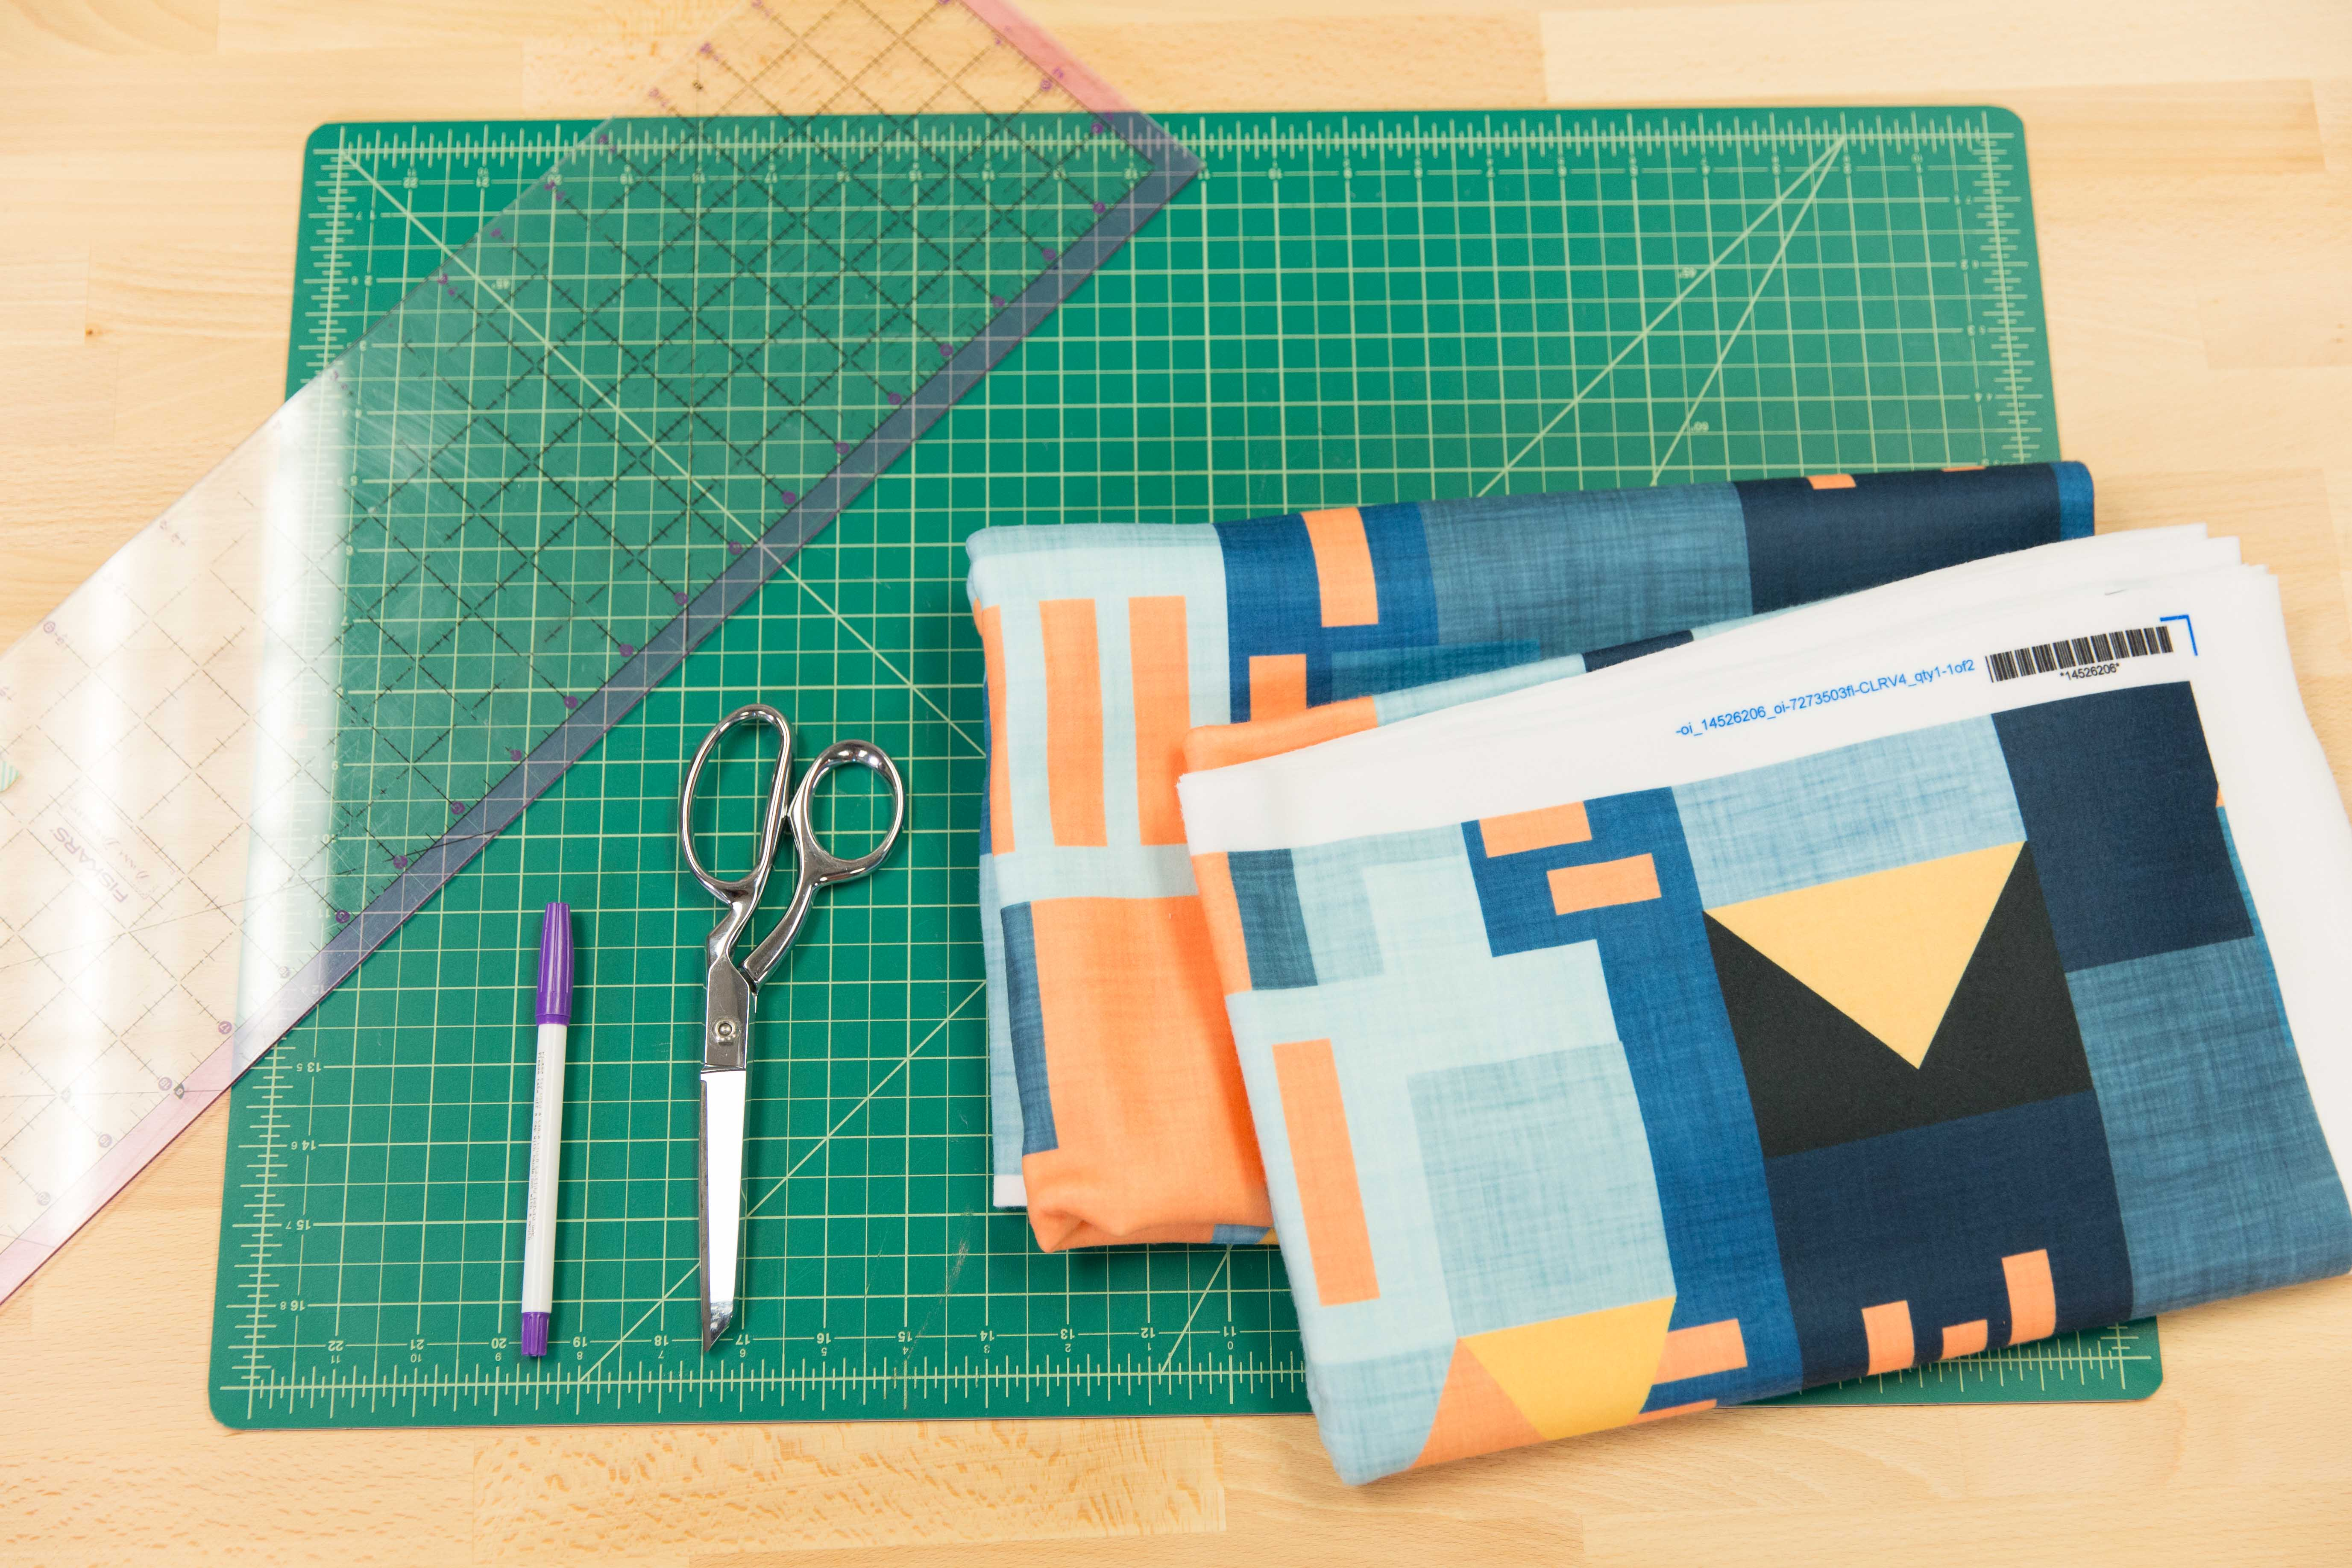 How To Make a No-Sew Fleece Tie Blanket in 3 Easy Steps | Spoonflower Blog